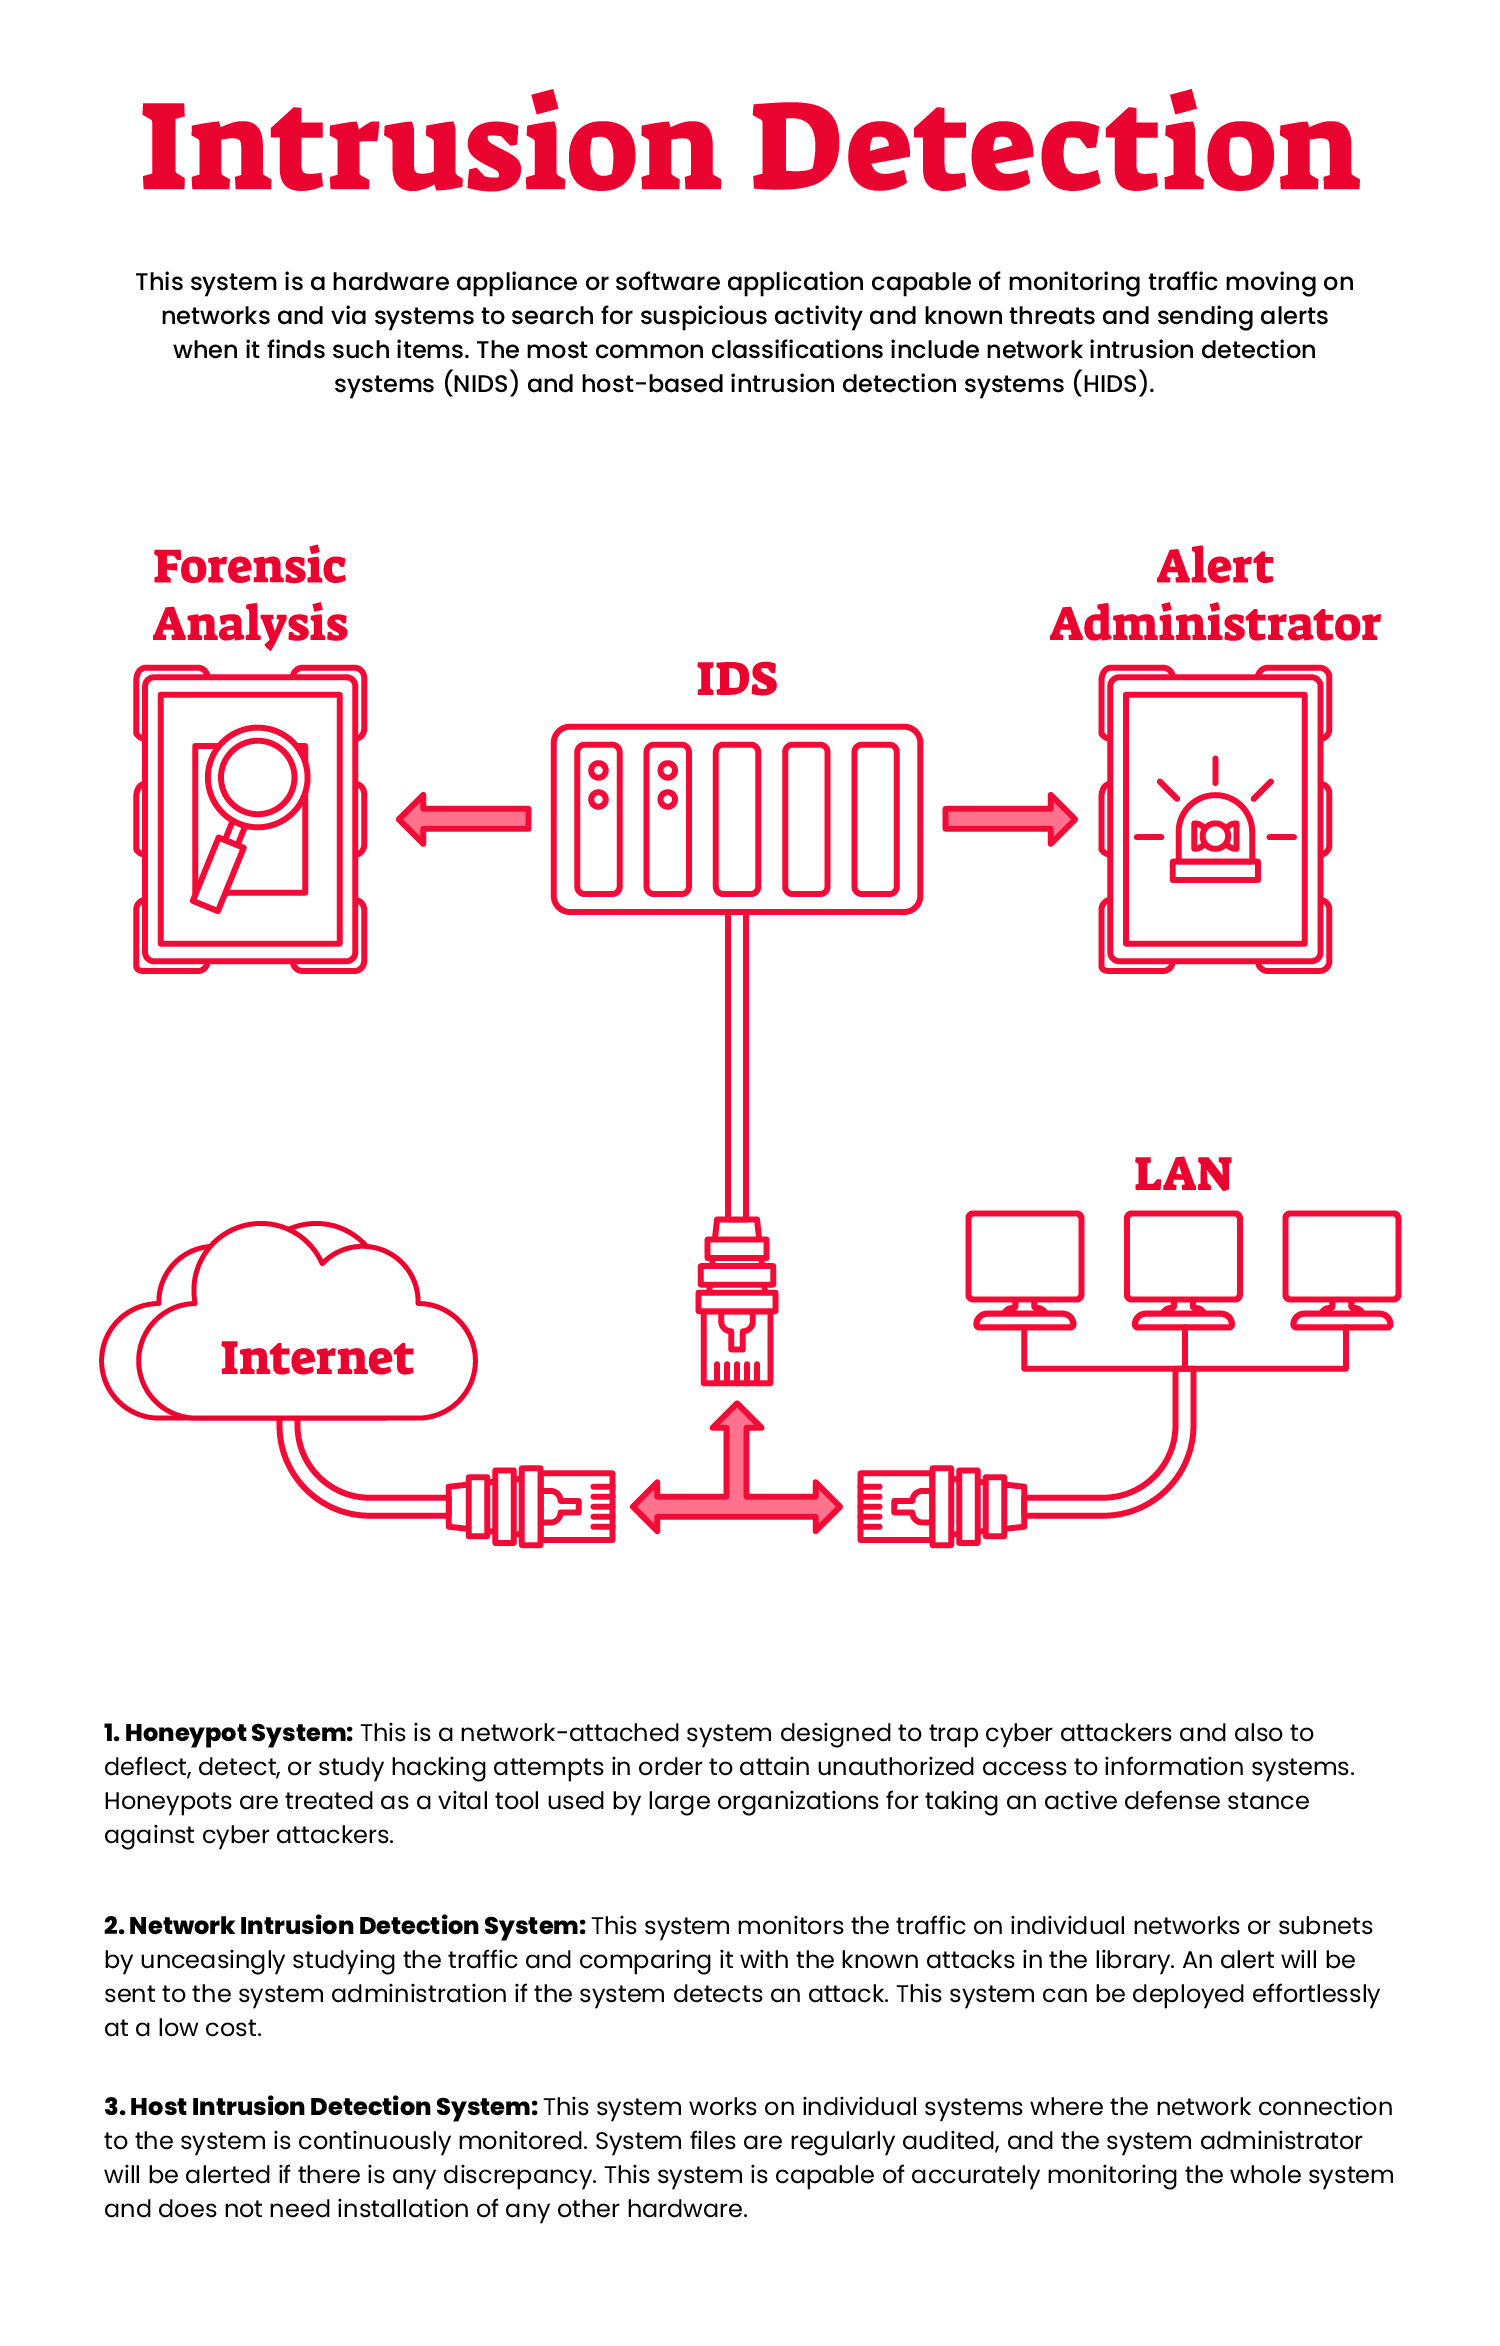 How does the Intrusion Detection System Works